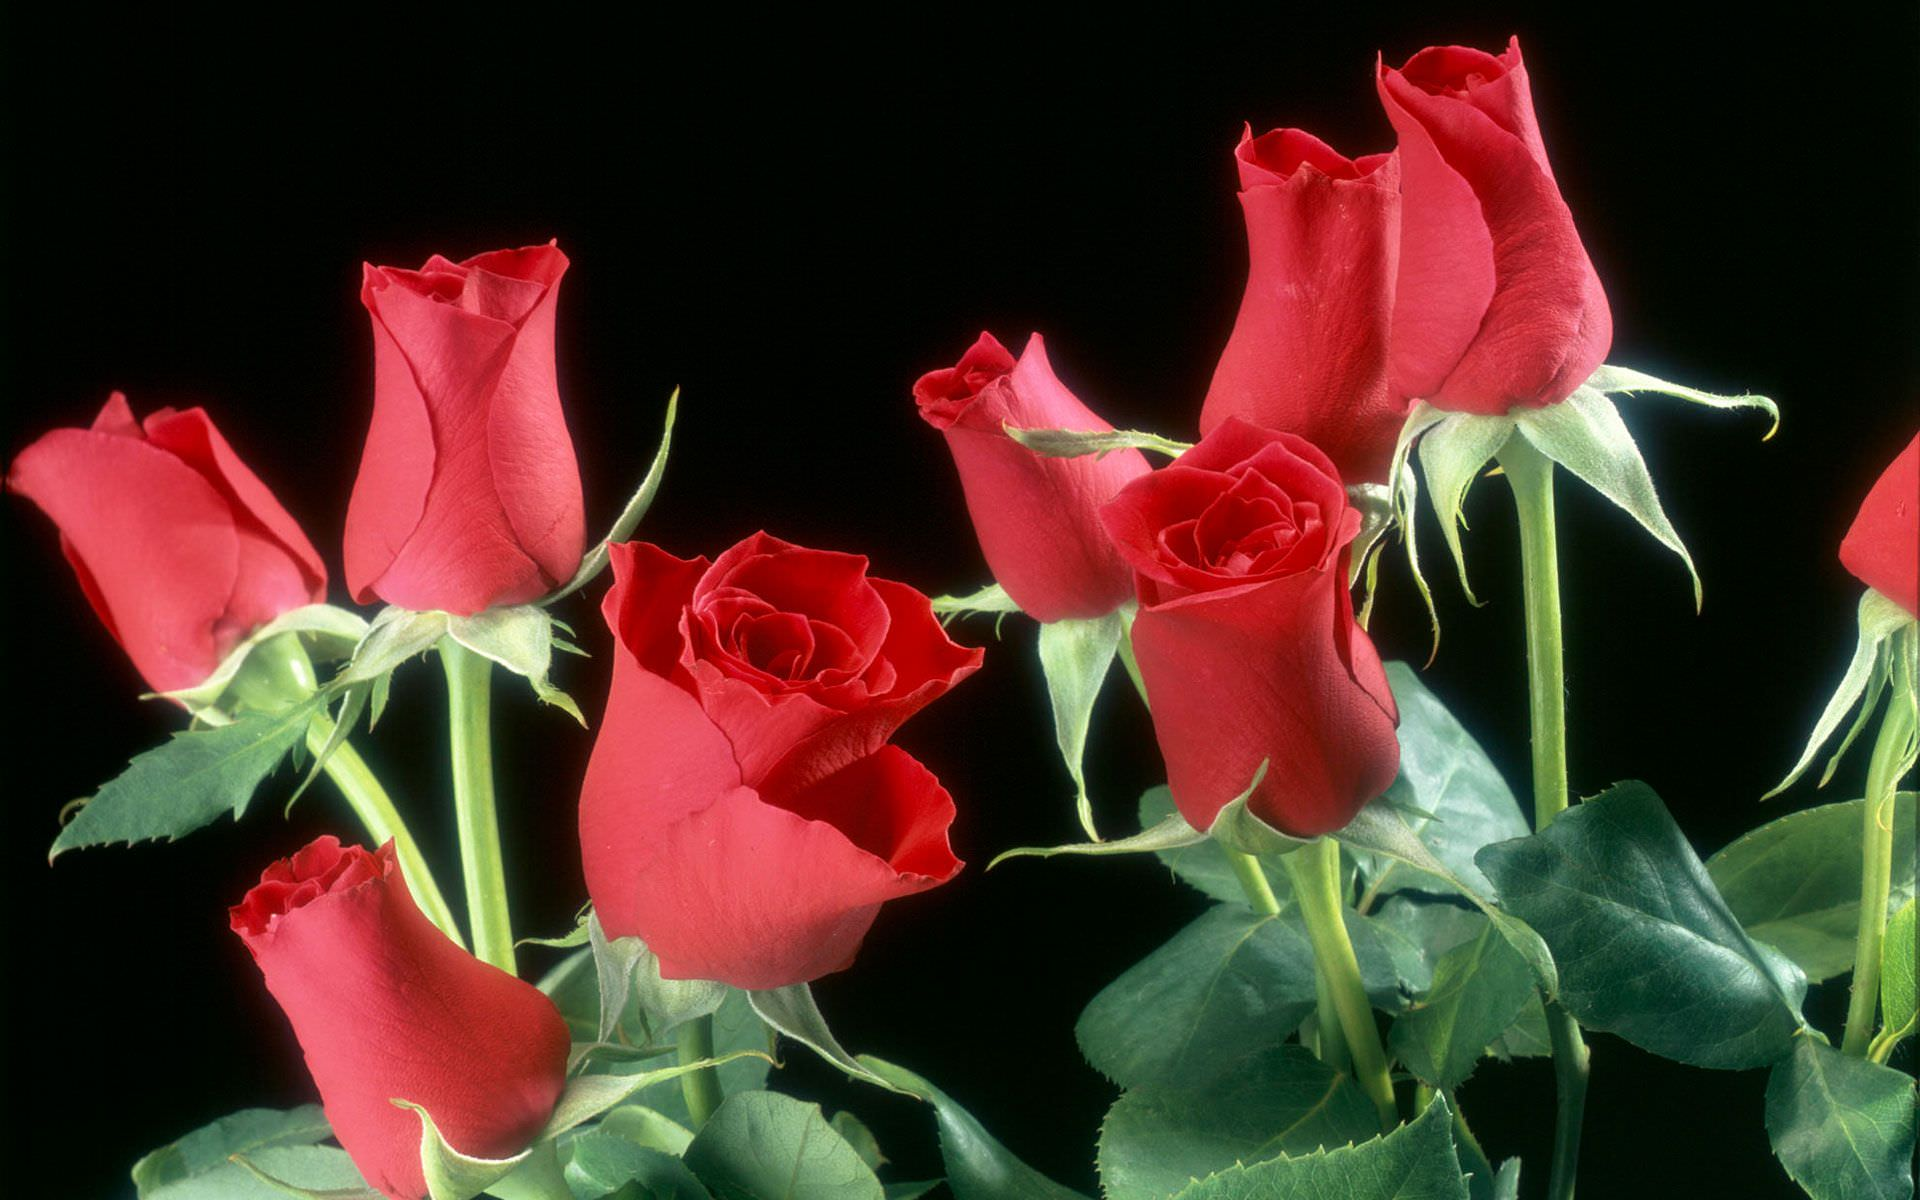 29 roses backgrounds wallpapers images pictures design fresh red roses background dhlflorist Image collections